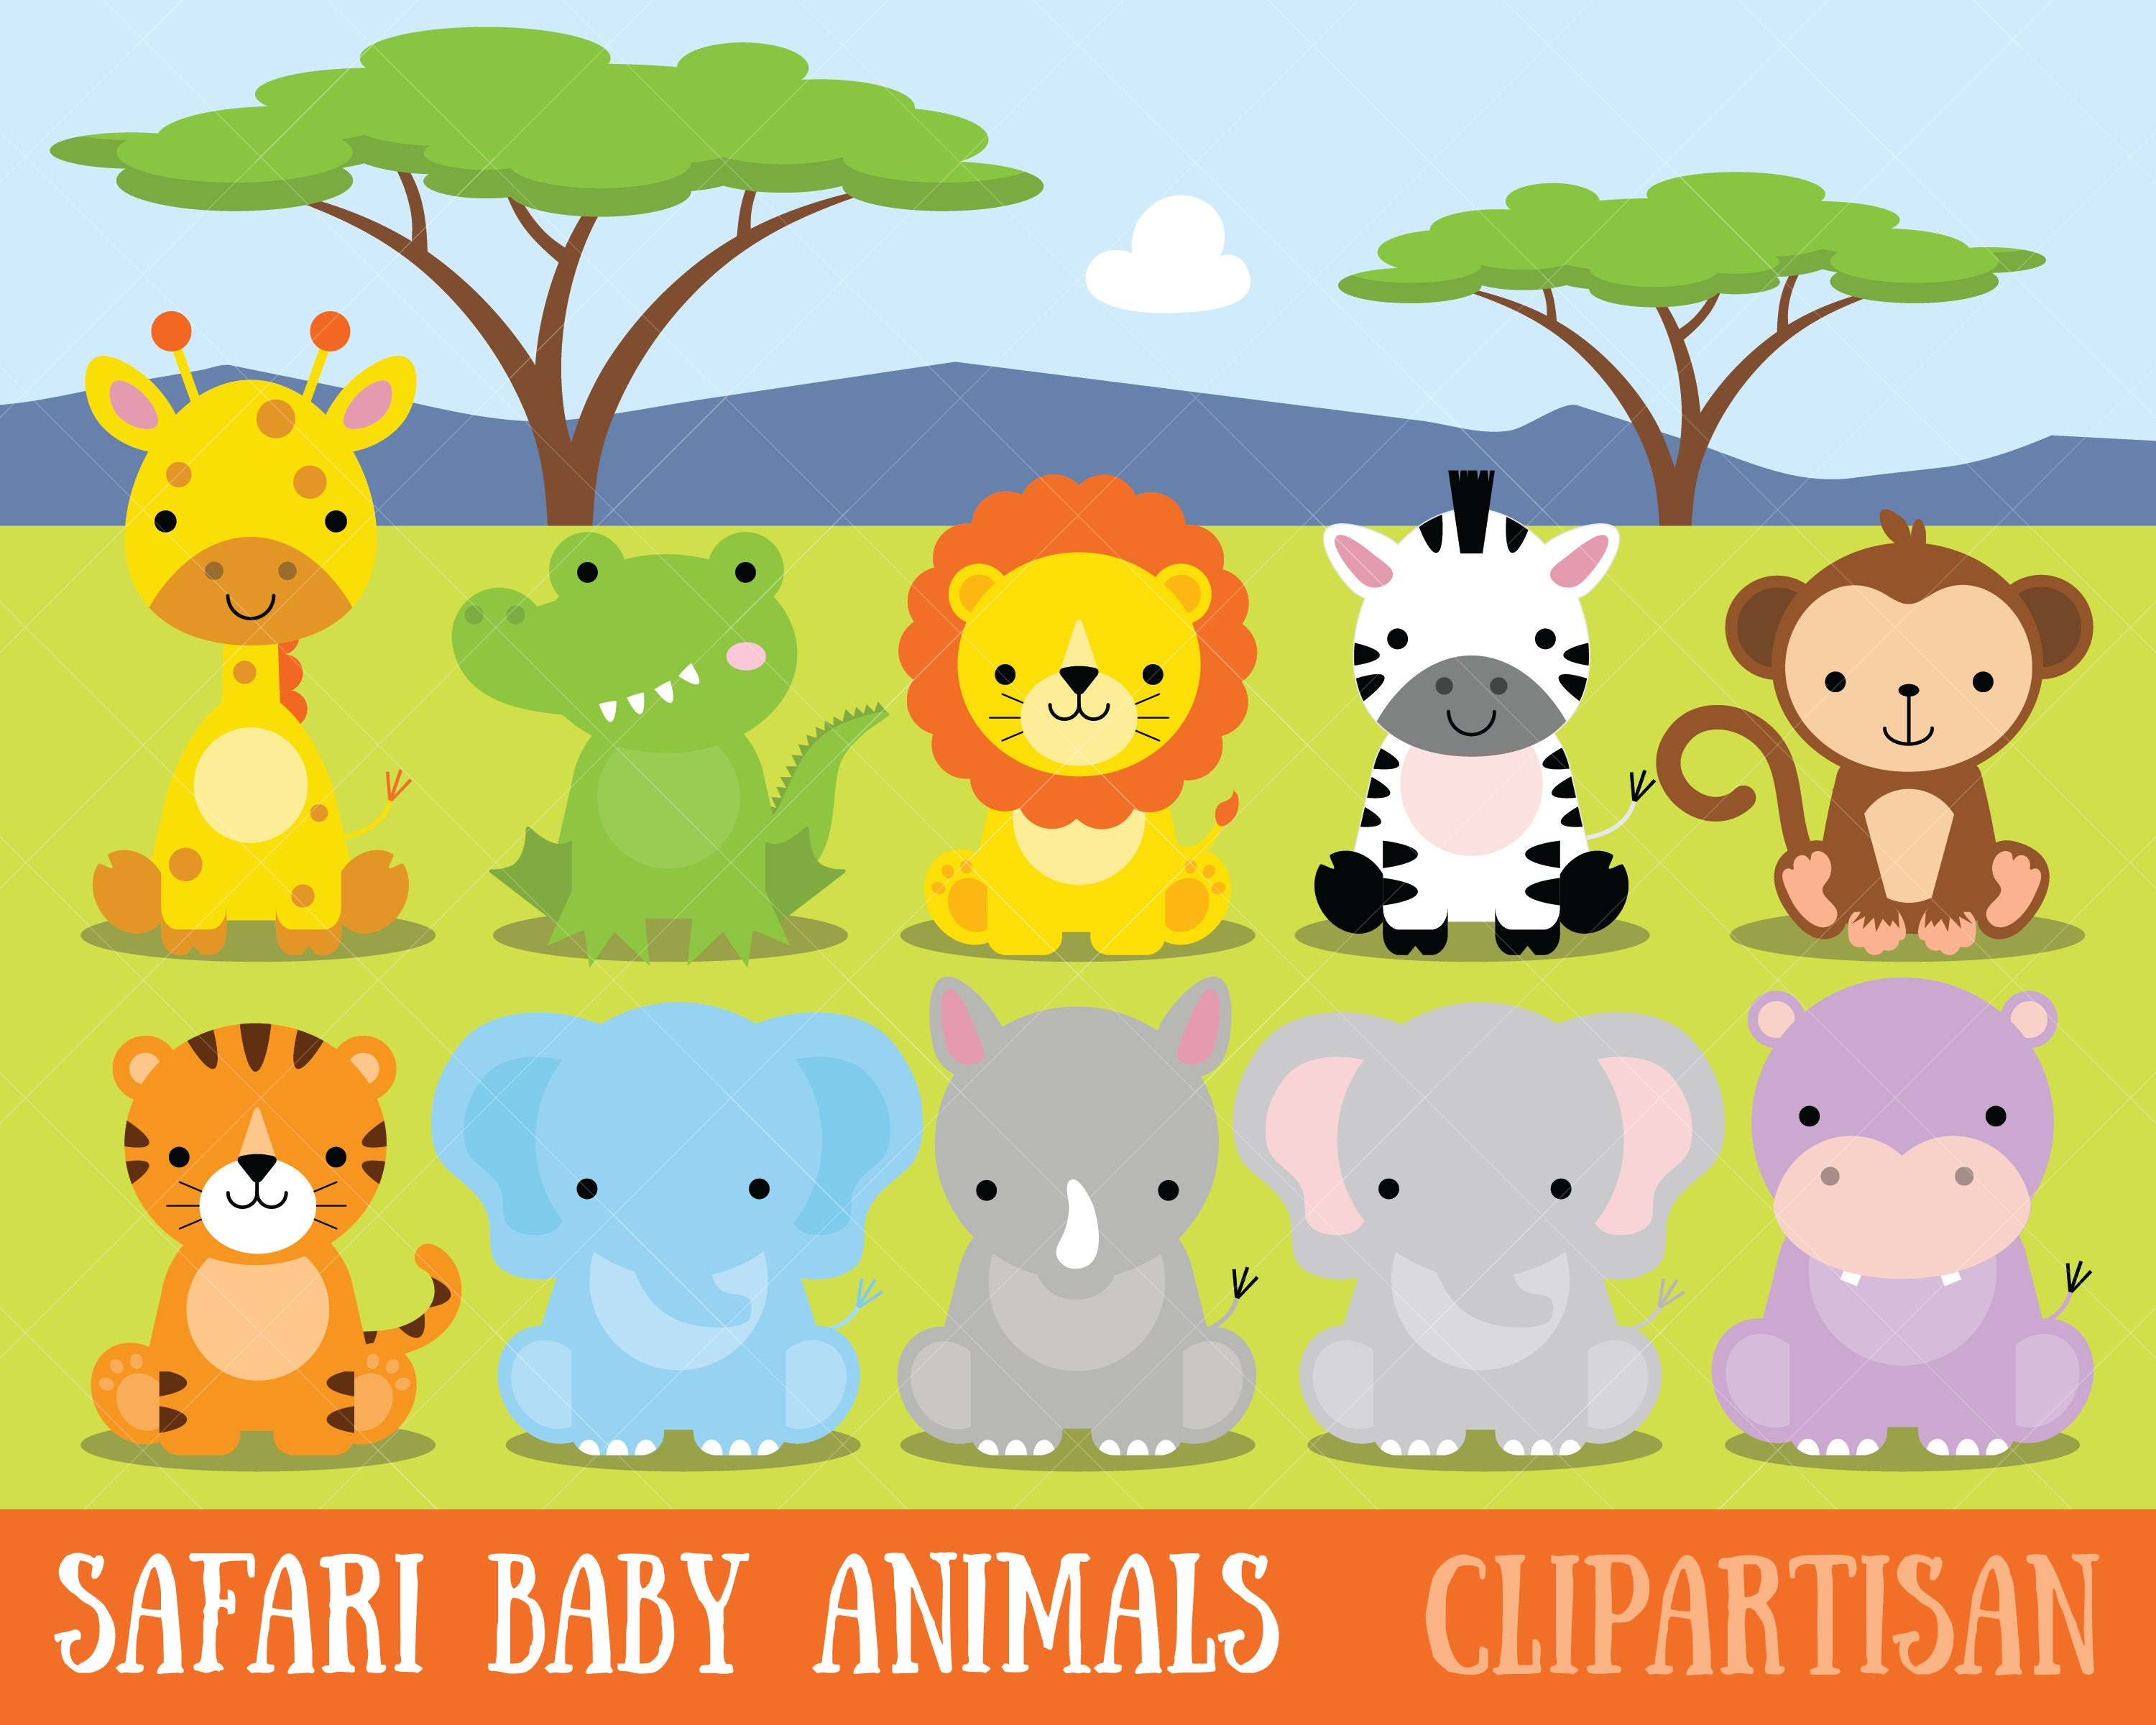 safari baby animals clipart jungle animals clipart zoo etsy rh etsy com zoo animal clipart free zoo animals clip art black and white